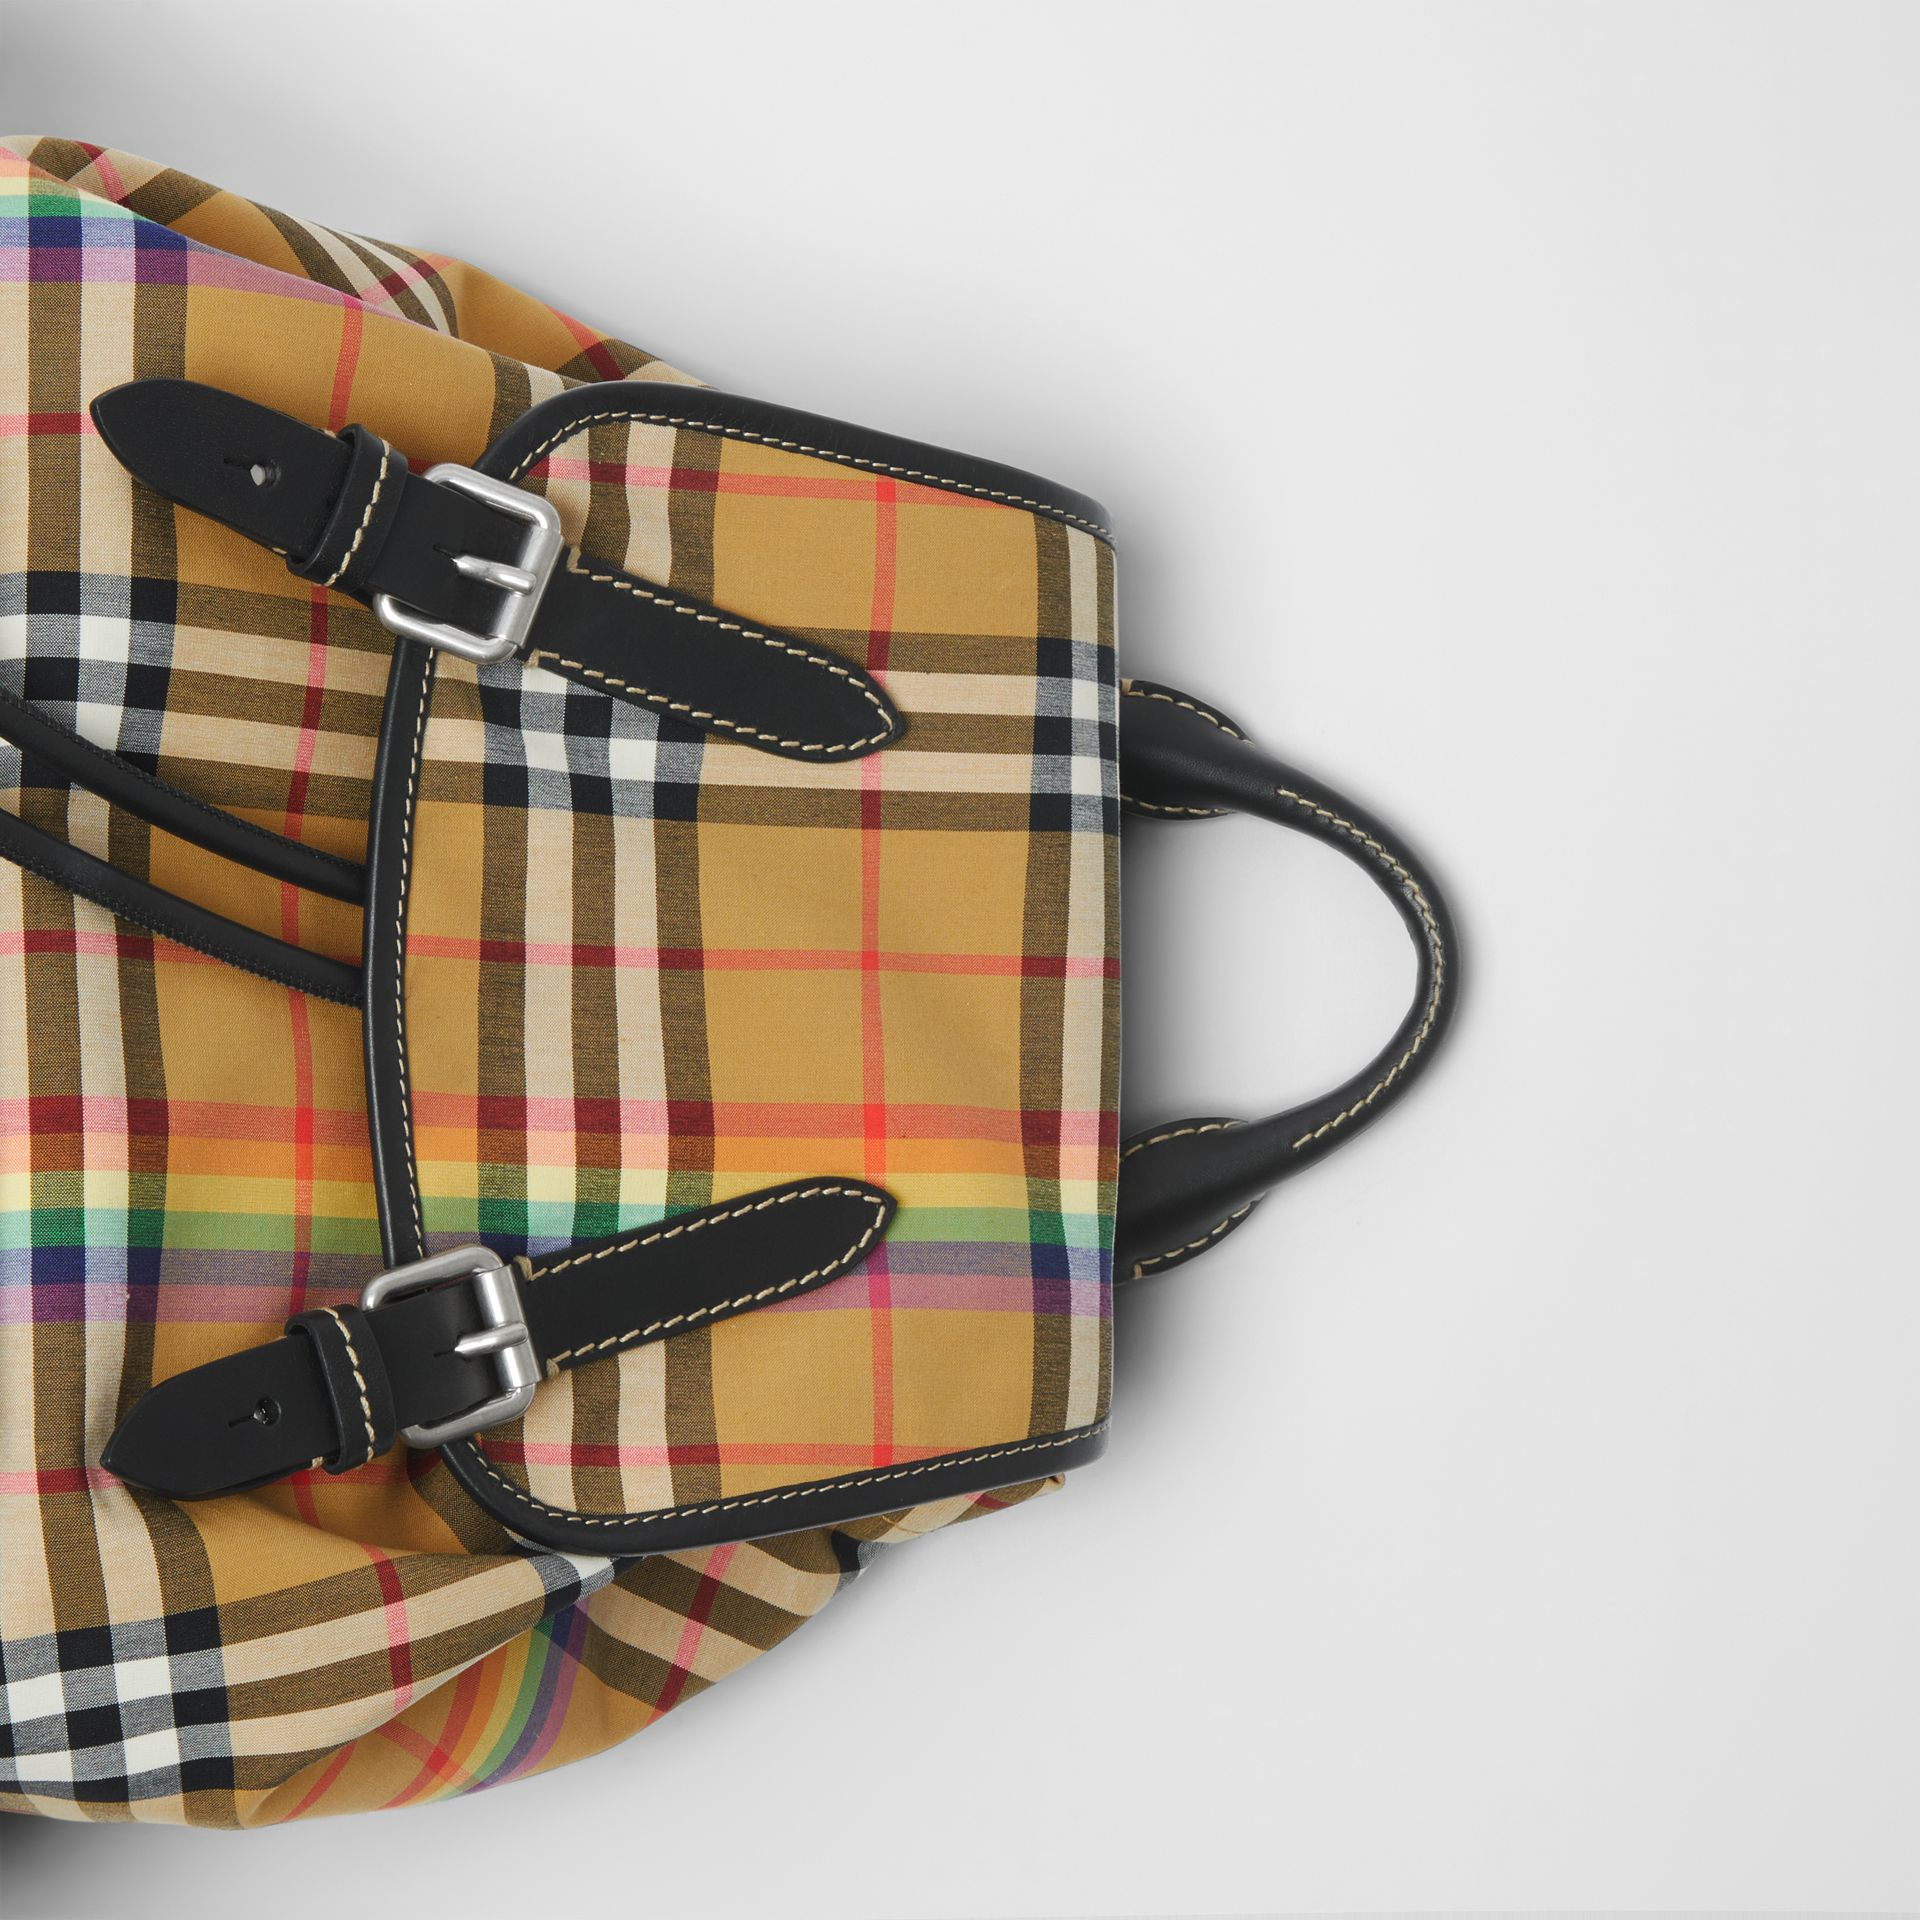 Sac The Rucksack moyen à motif Rainbow Vintage check (Jaune Antique) - Femme | Burberry - photo de la galerie 1